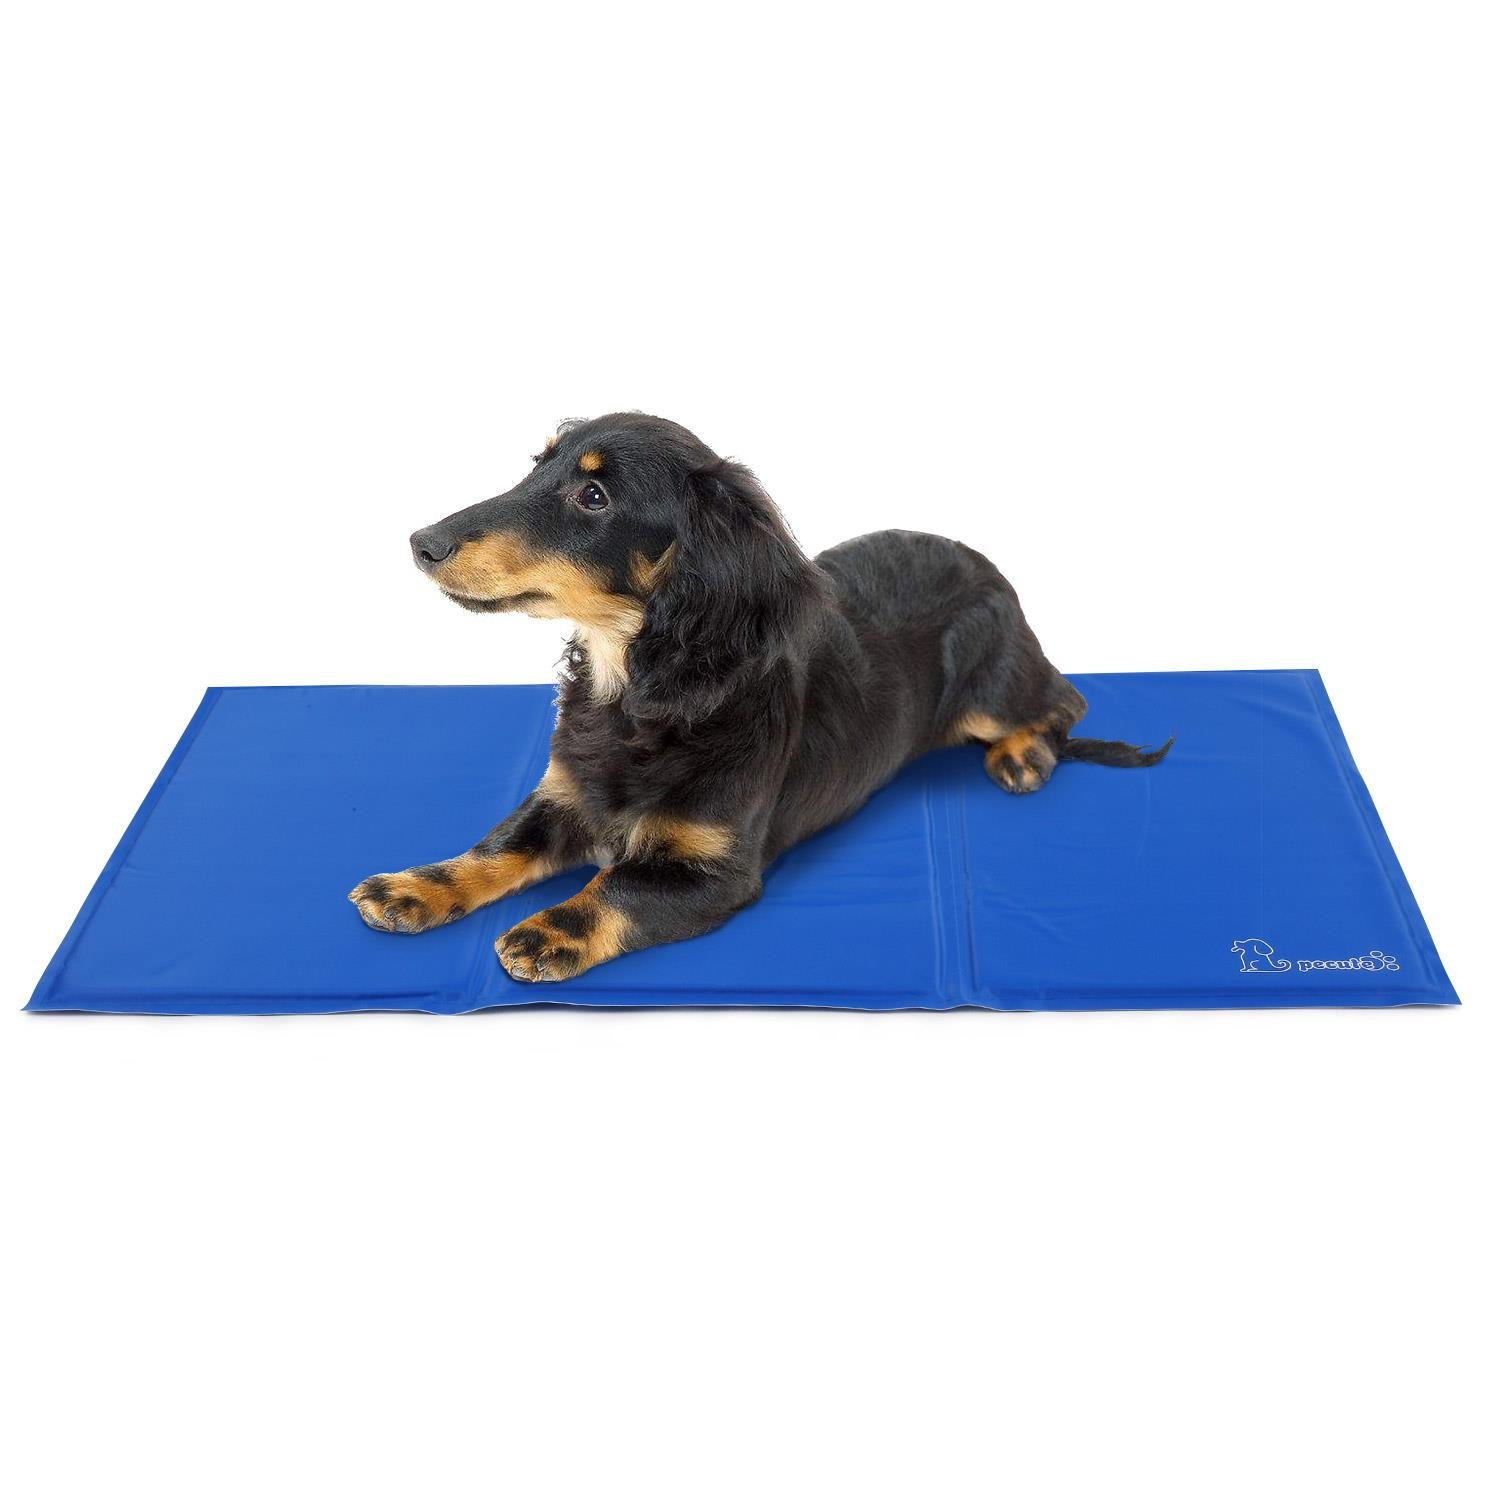 Dog Cooling Mat Large 90x50cm, Non-Toxic Gel Self Cooling Pad for Pets in Hot Summer